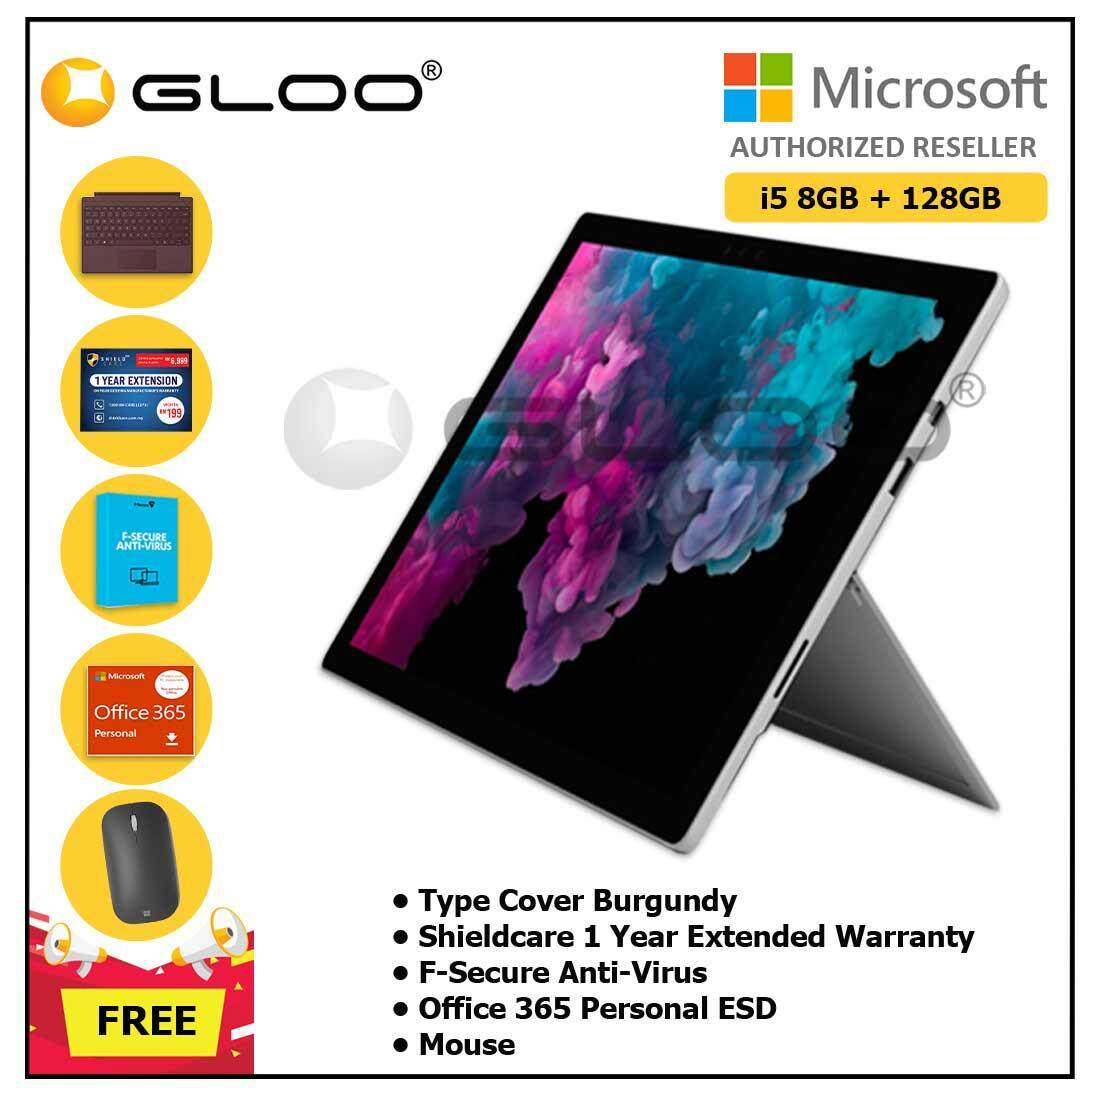 Microsoft Surface Pro 6 Core i5/8GB RAM -128GB + Type Cover Burgundy + Office 365 Personal (ESD) + Shieldcare 1 Year Extended Warranty + F-Secure EndPoint Protection + Mouse